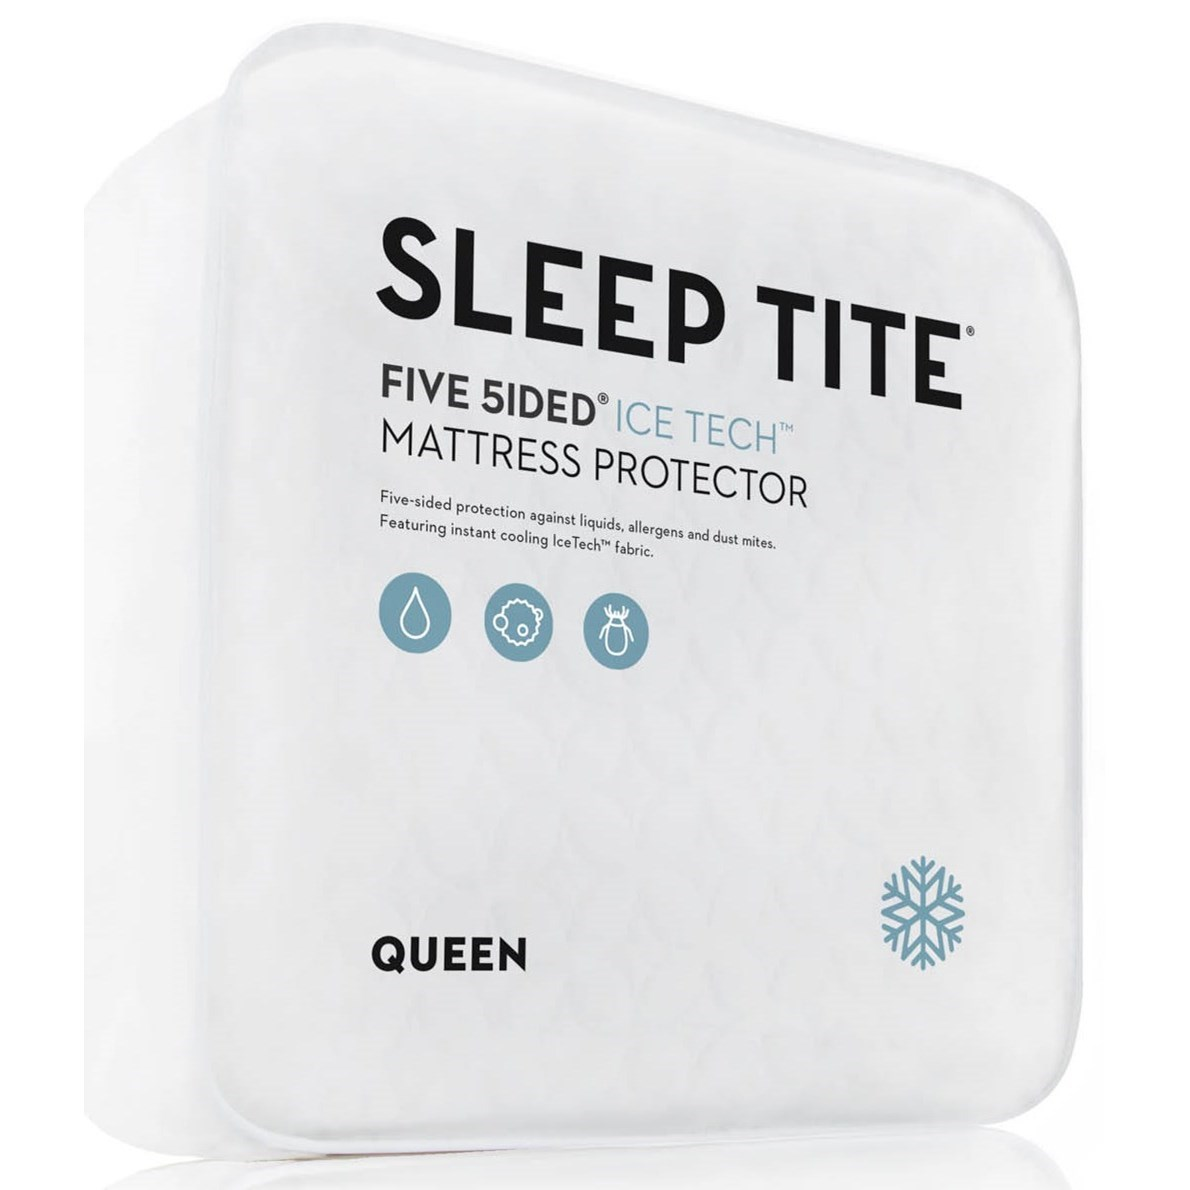 Five 5ided IceTech Twin Five 5ided IceTech Mattress Protector by Malouf at Standard Furniture